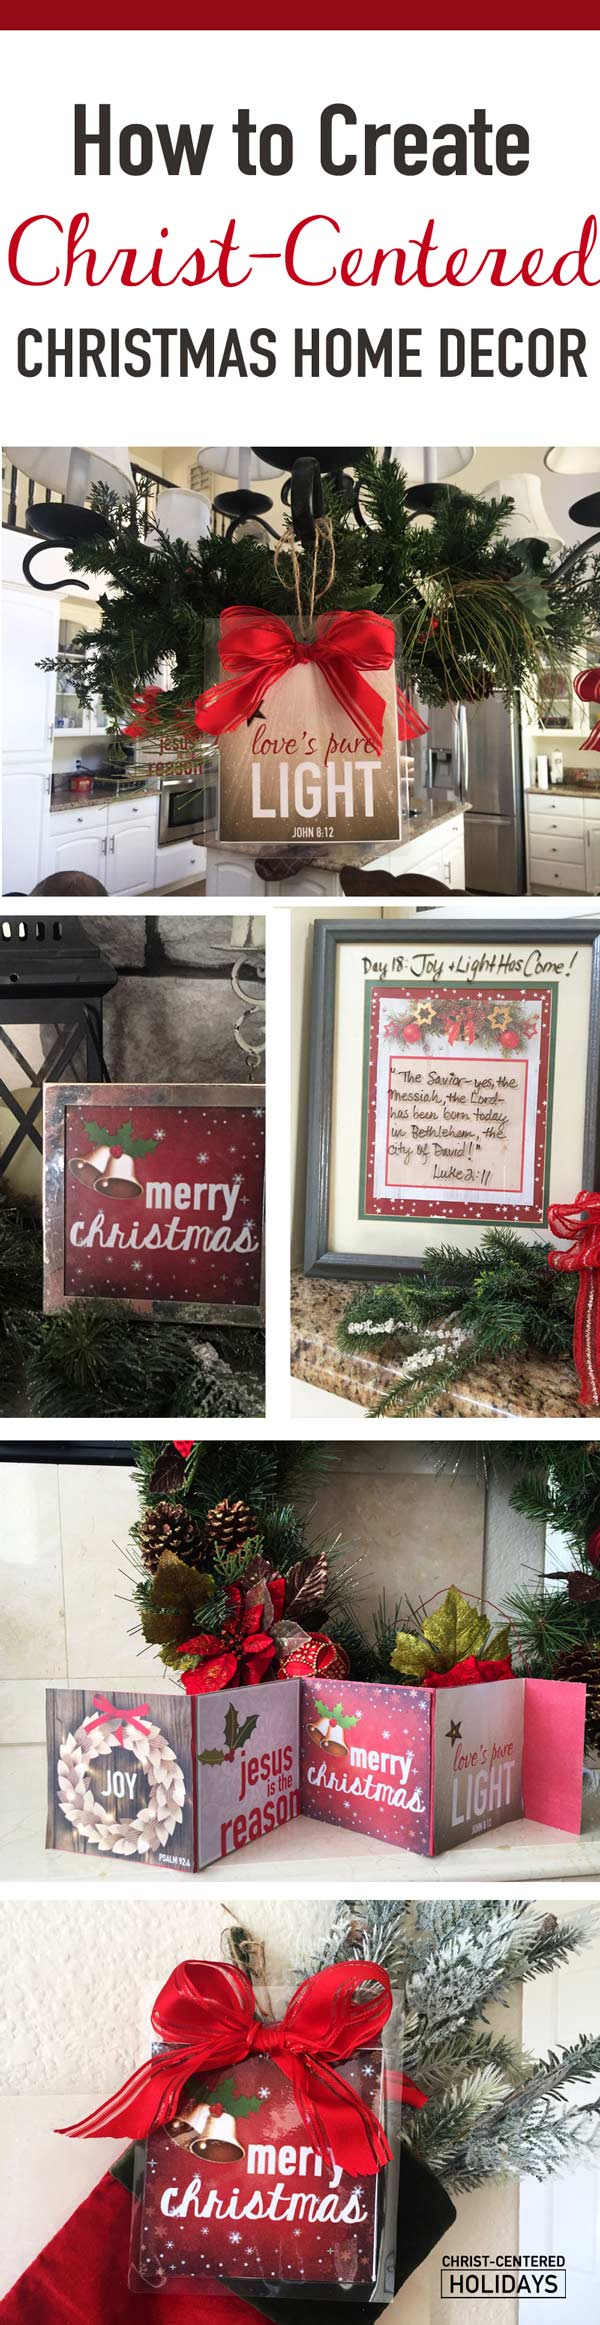 Looking for Christ centered Christmas home decor? Discover how to create unique Christmas decor that invites the true spirit of the holiday season with these Christ centered Christmas decorations. #christmashomedecor #christmas #christcenteredchristmas #christmasdecor